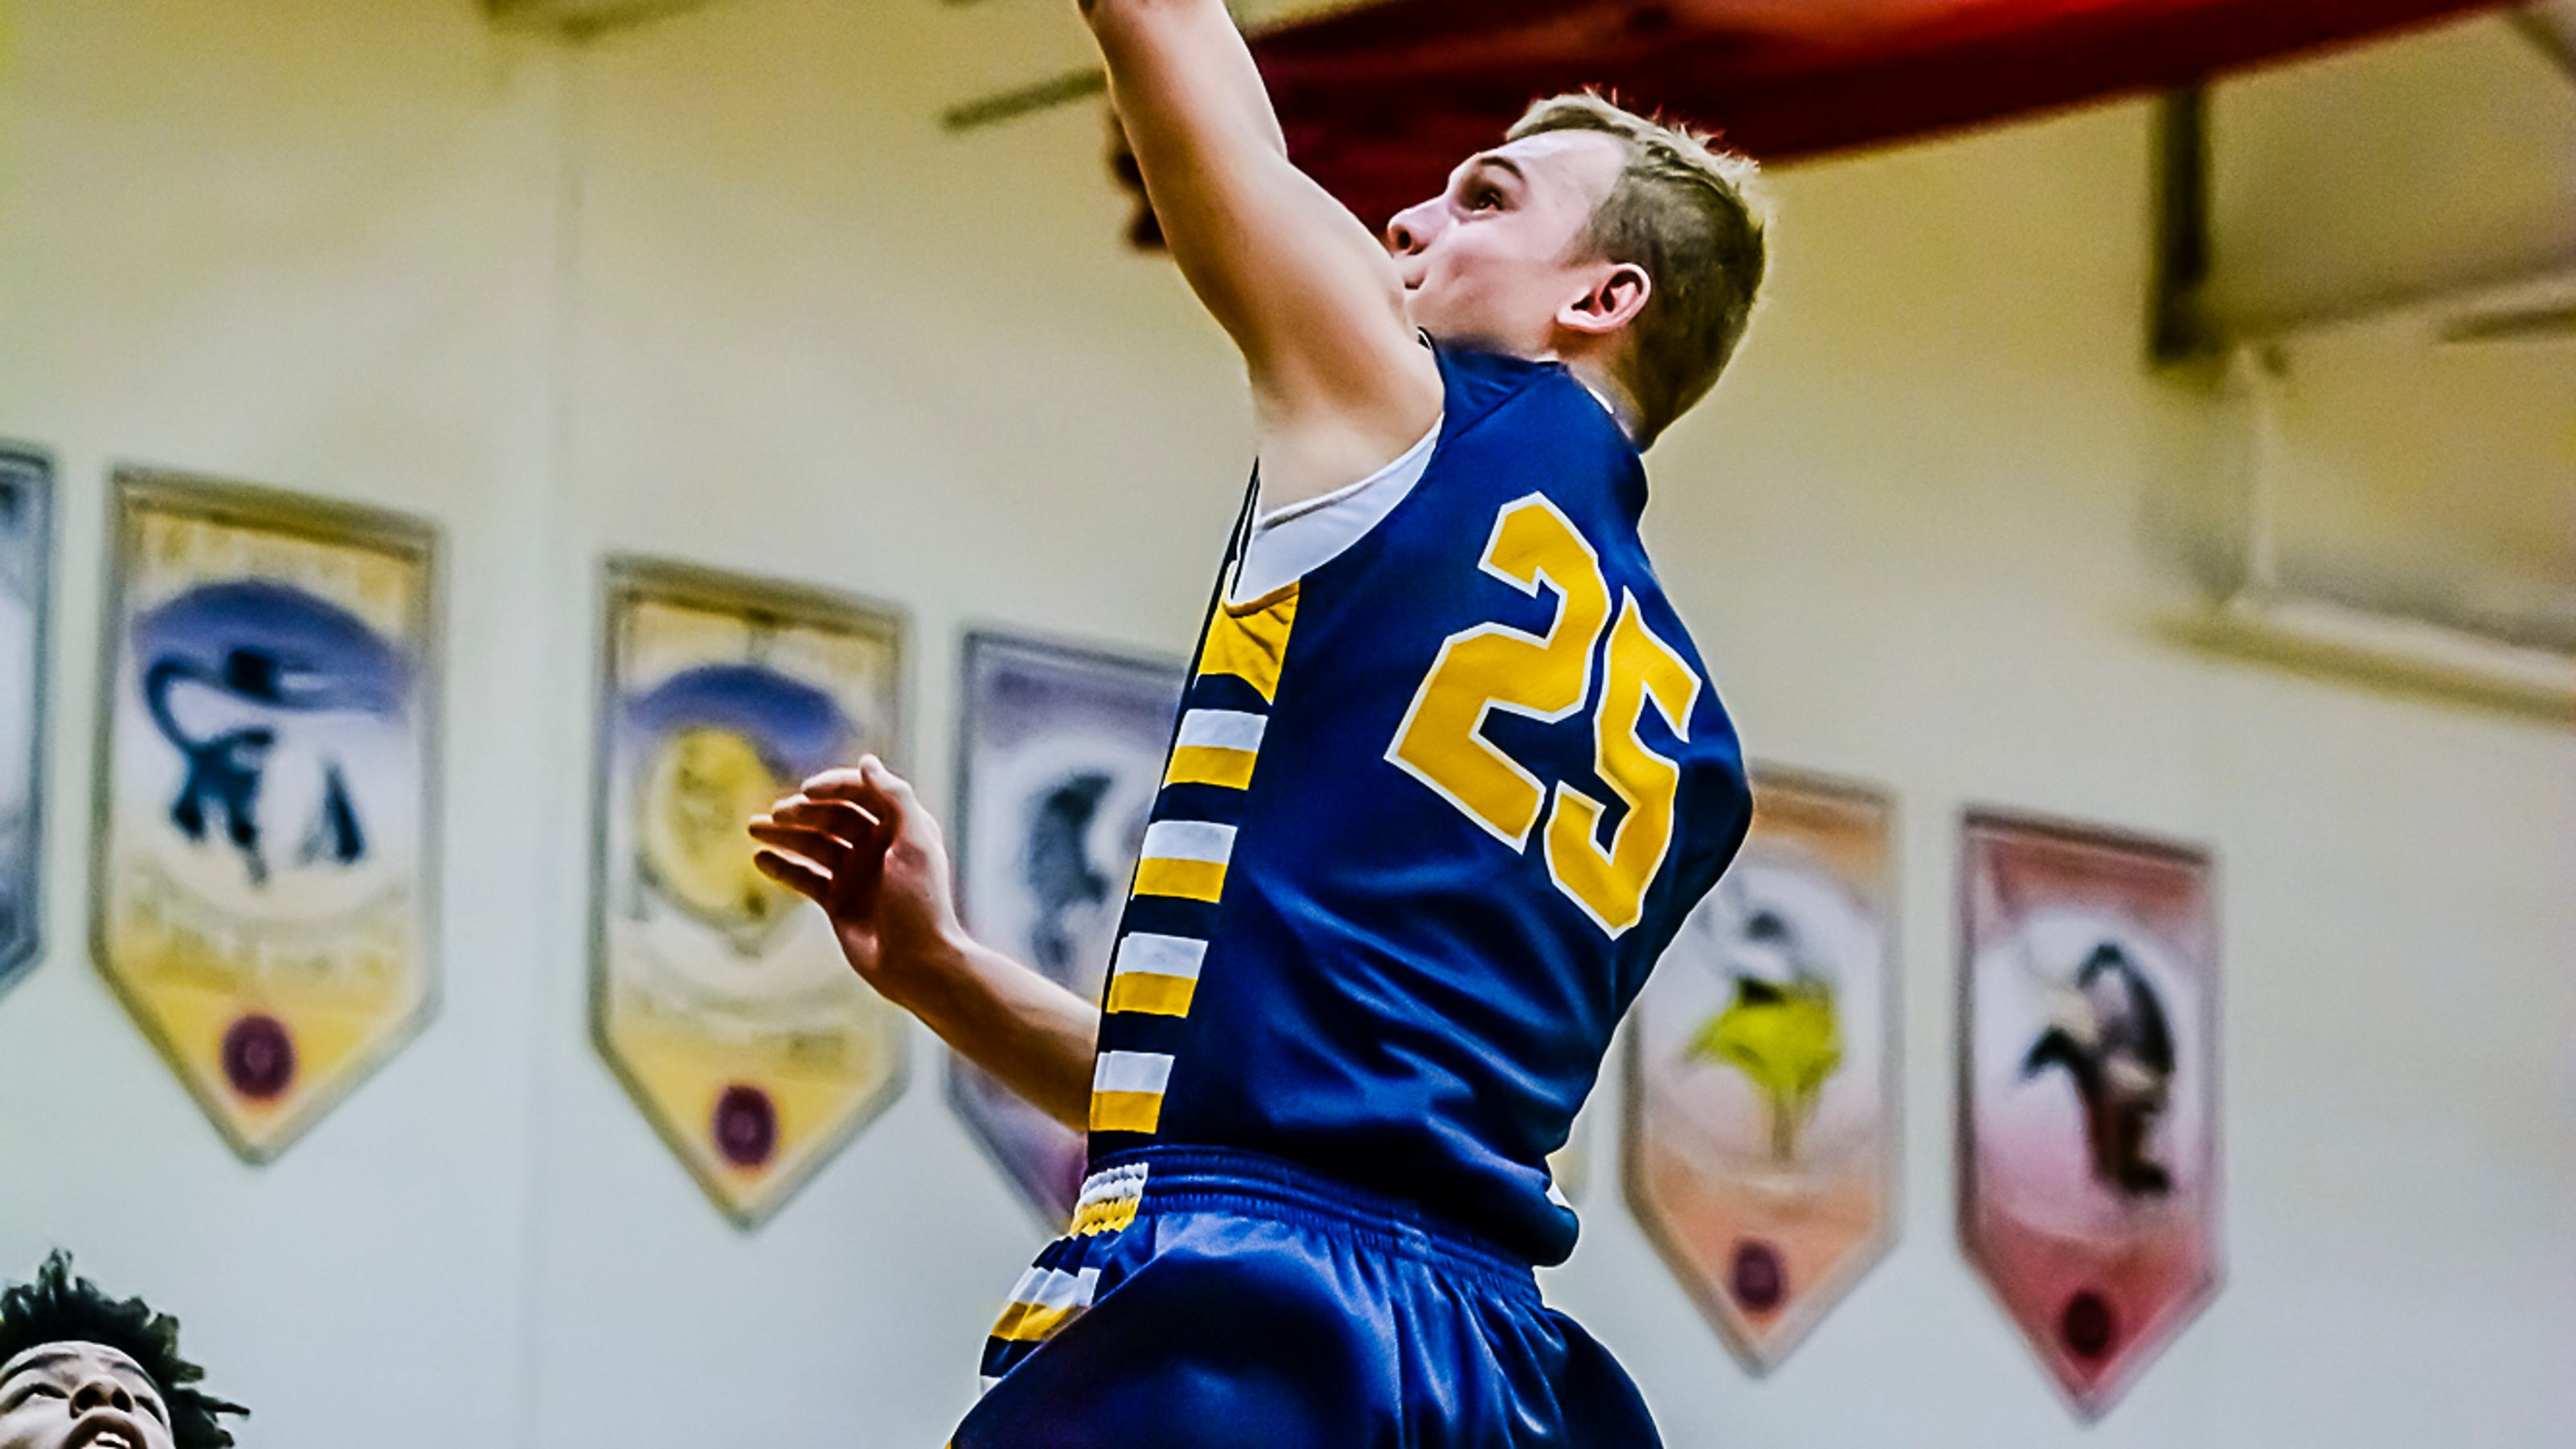 Grand Ledge boys hoops moves into Class A poll - Lansing State Journal